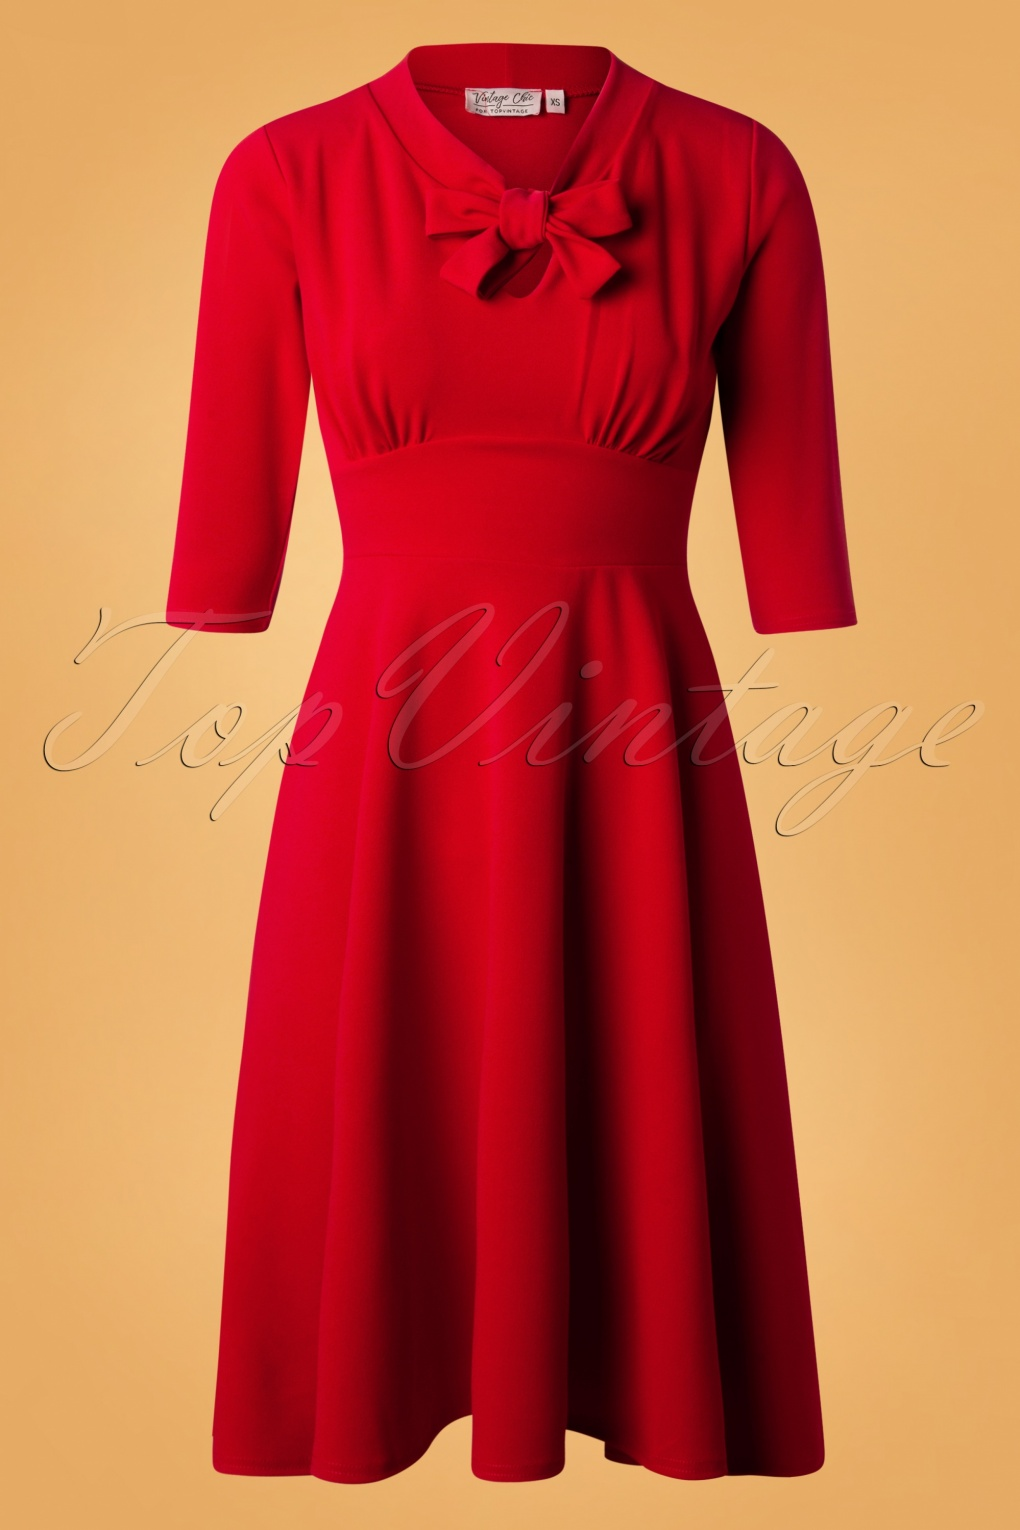 Vintage Christmas Dress | Party Dresses | Night Out Outfits 50s Geraldine Swing Dress in Red £52.49 AT vintagedancer.com